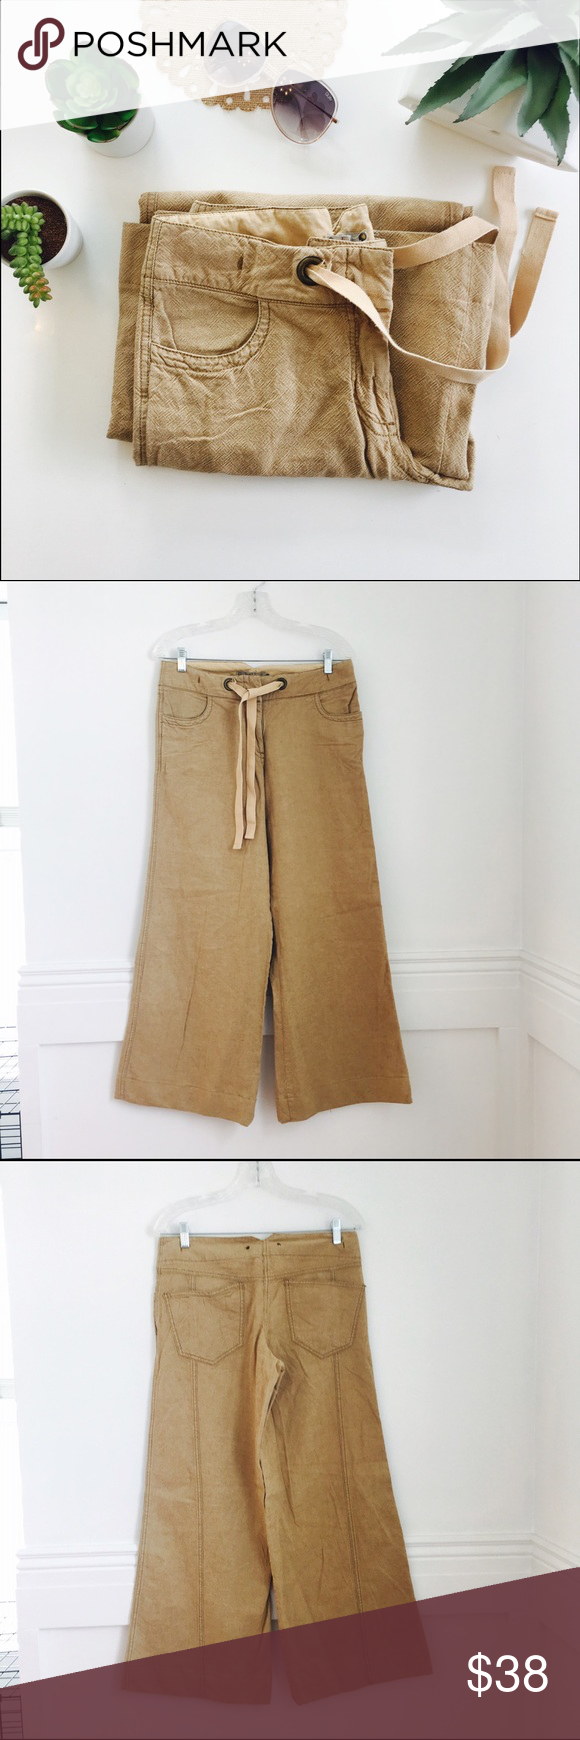 Hei Hei pants NEW WITHOUT TAGS. Tan color, wide leg cropped pants in cotton and linen. Hook & eye and zip closure, plus drawstring waist. Front and back pockets. Anthropologie Pants